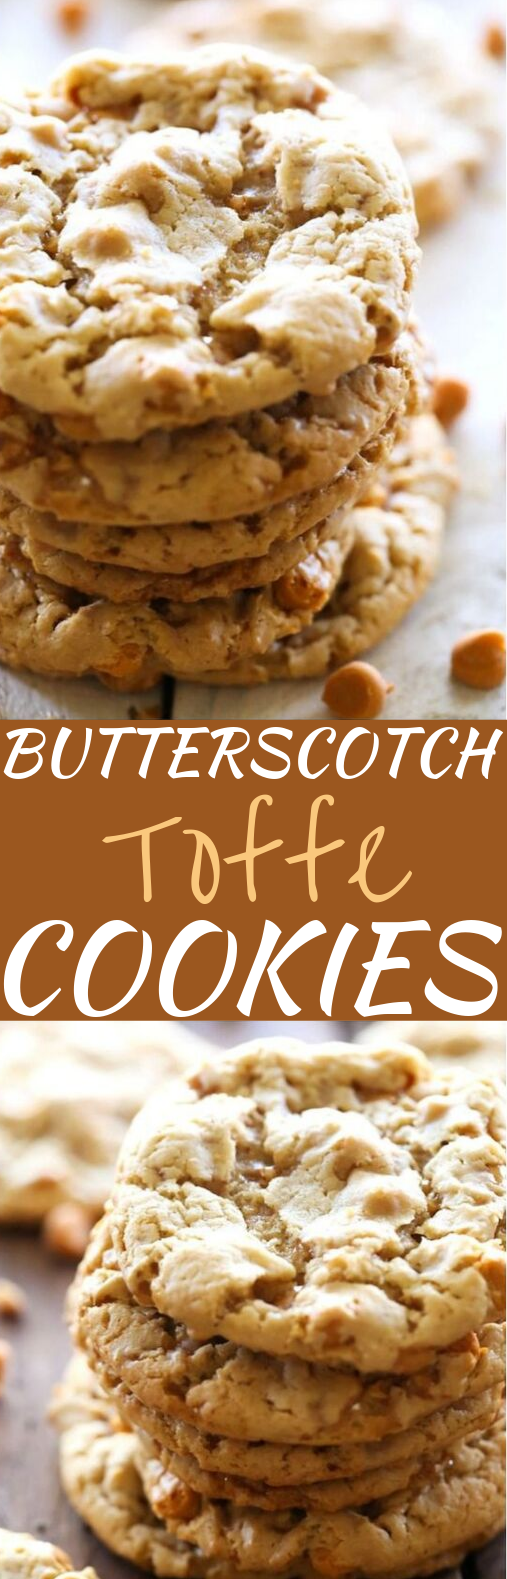 Butterscotch Toffee Cookies #cookies #desserts